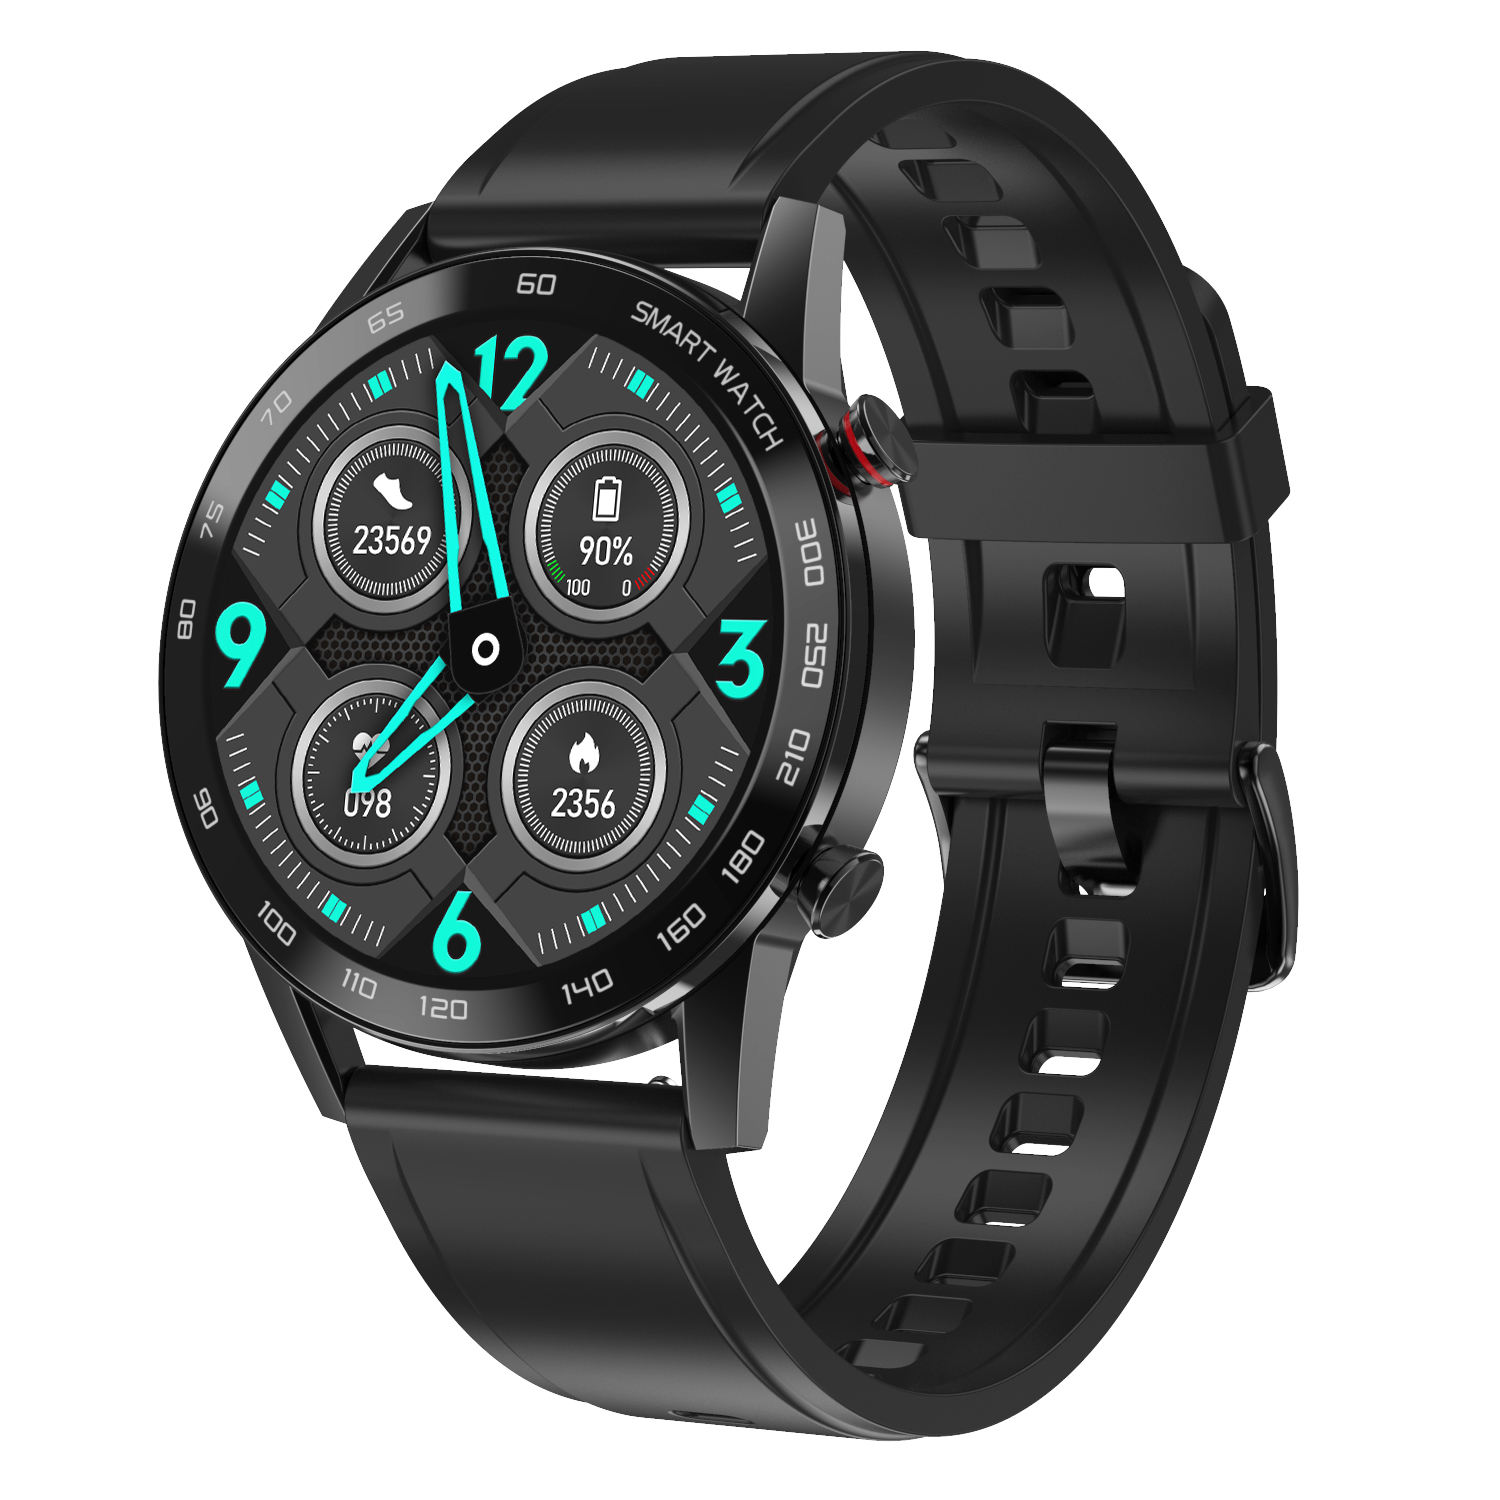 New Style Men Digital Smart Watch DT95 45ミリメートルLong Battery生活IP68 Waterproof ECG監視IOS Android dt95スマートウォッチ